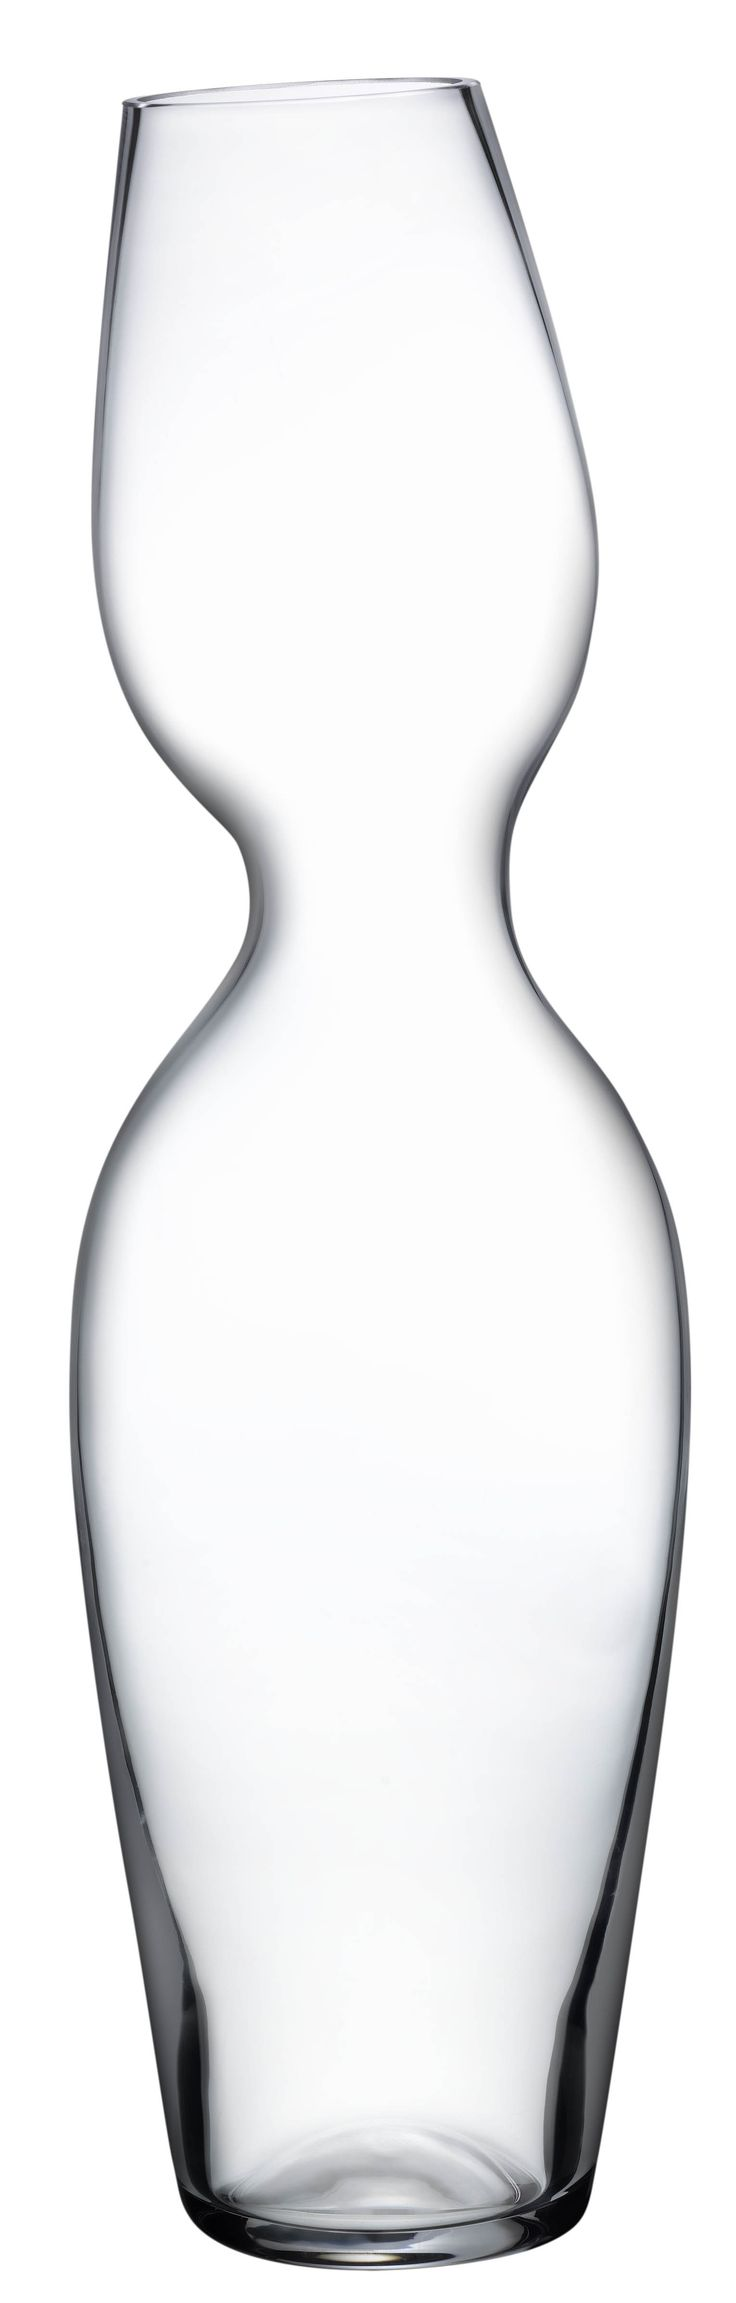 Jug - Red or White Collection #nude #collection #design #glass